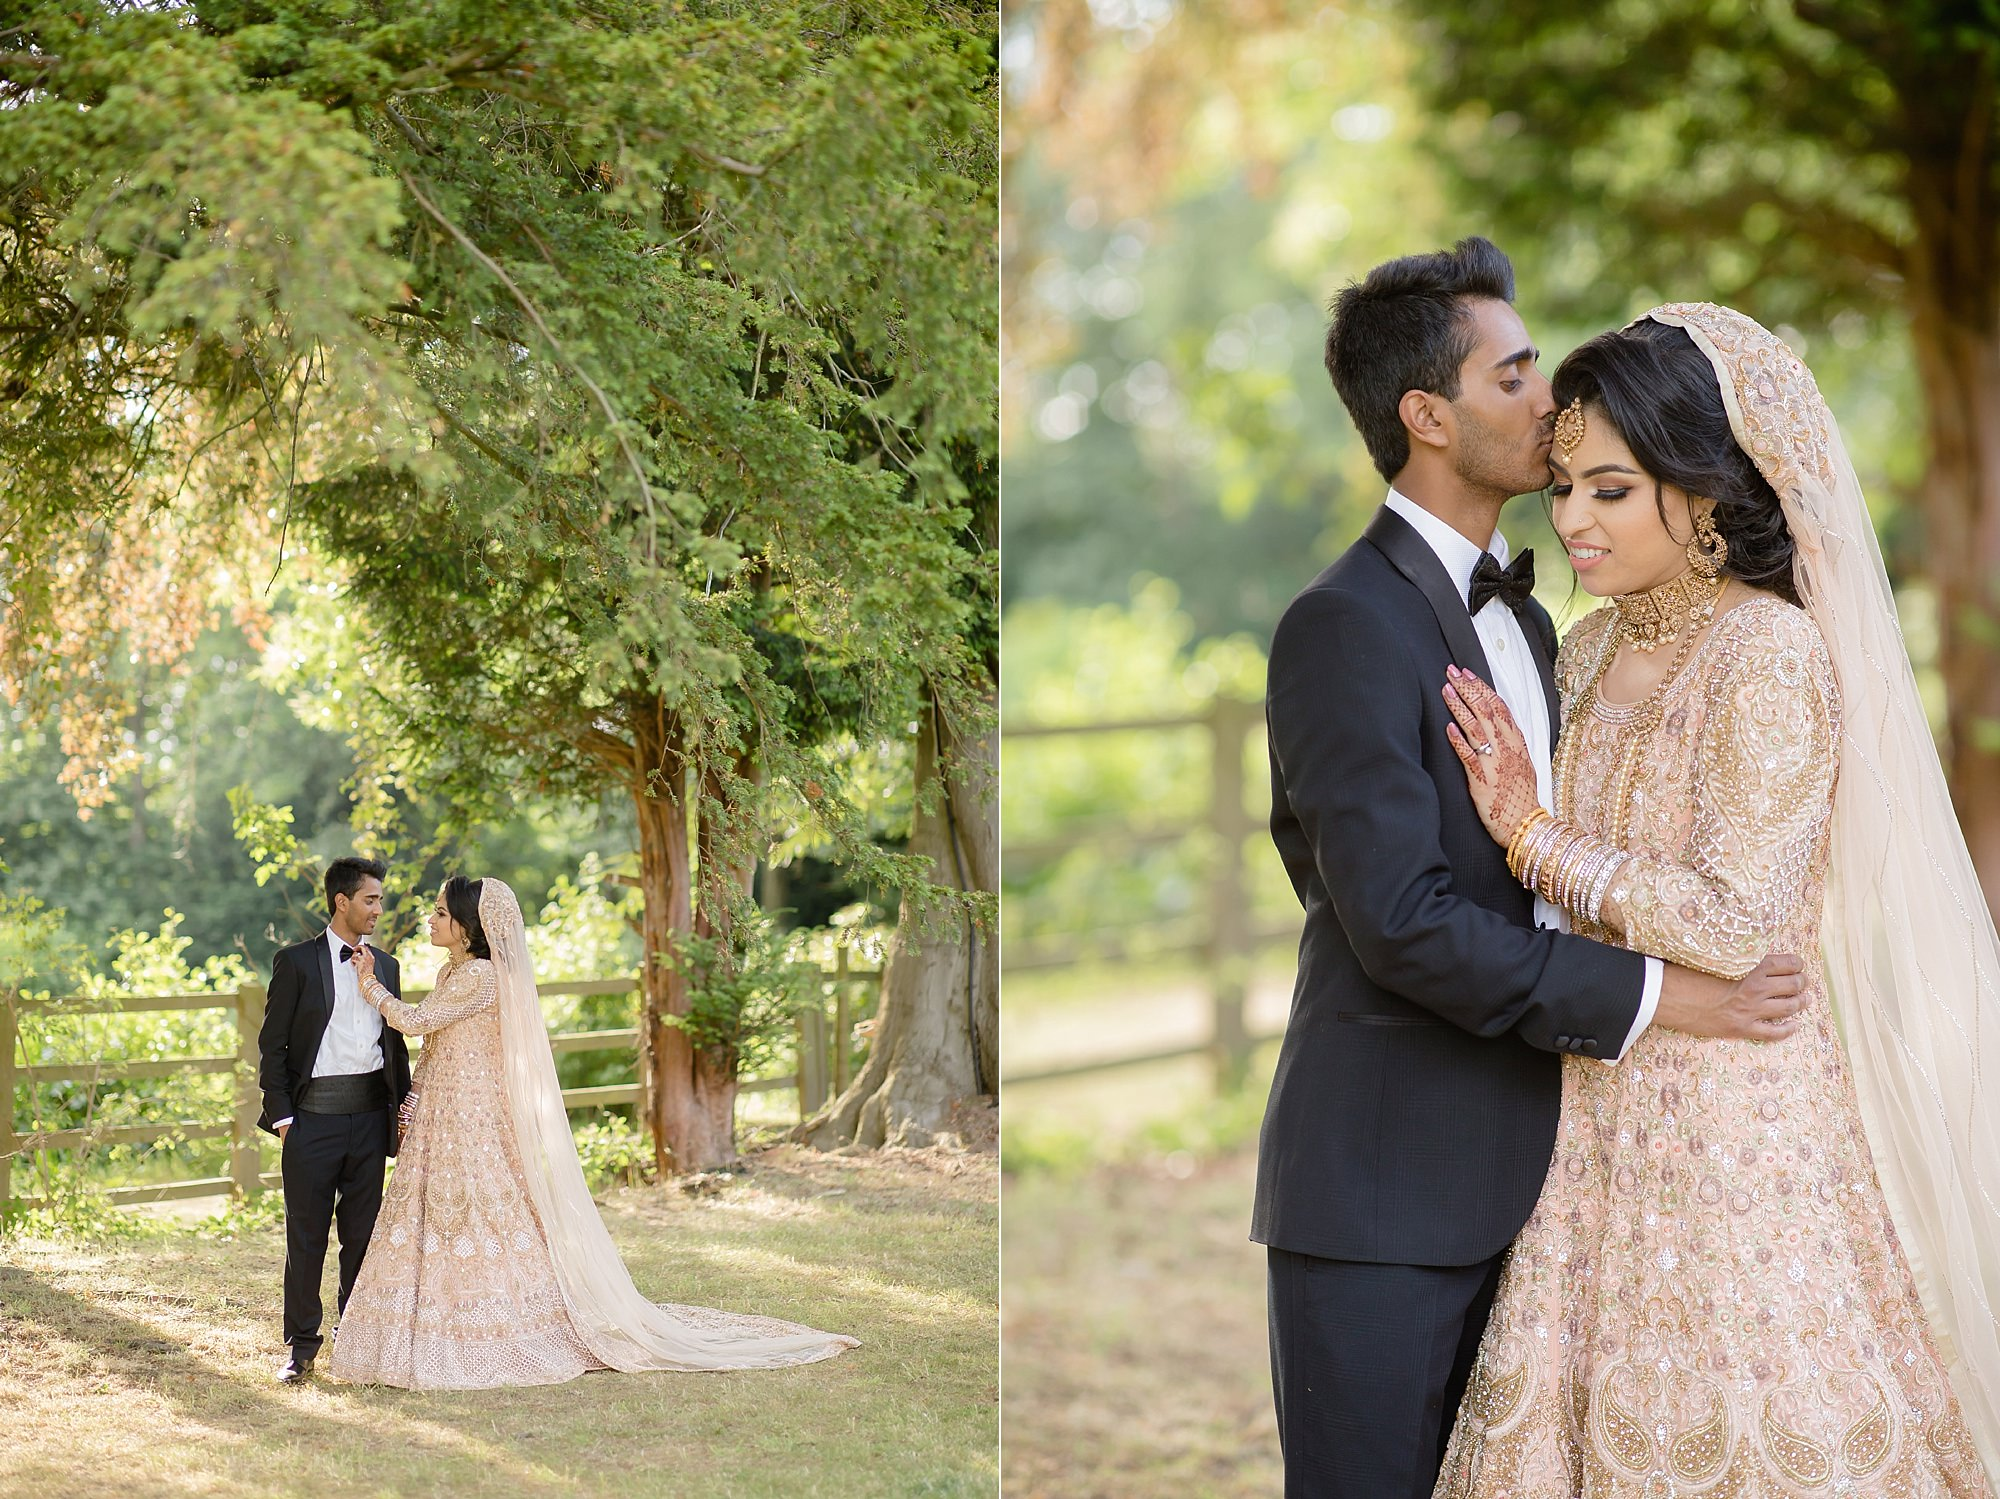 Asian bride groom wedding photography Hilton Hall WolverhamptonWedding Venue